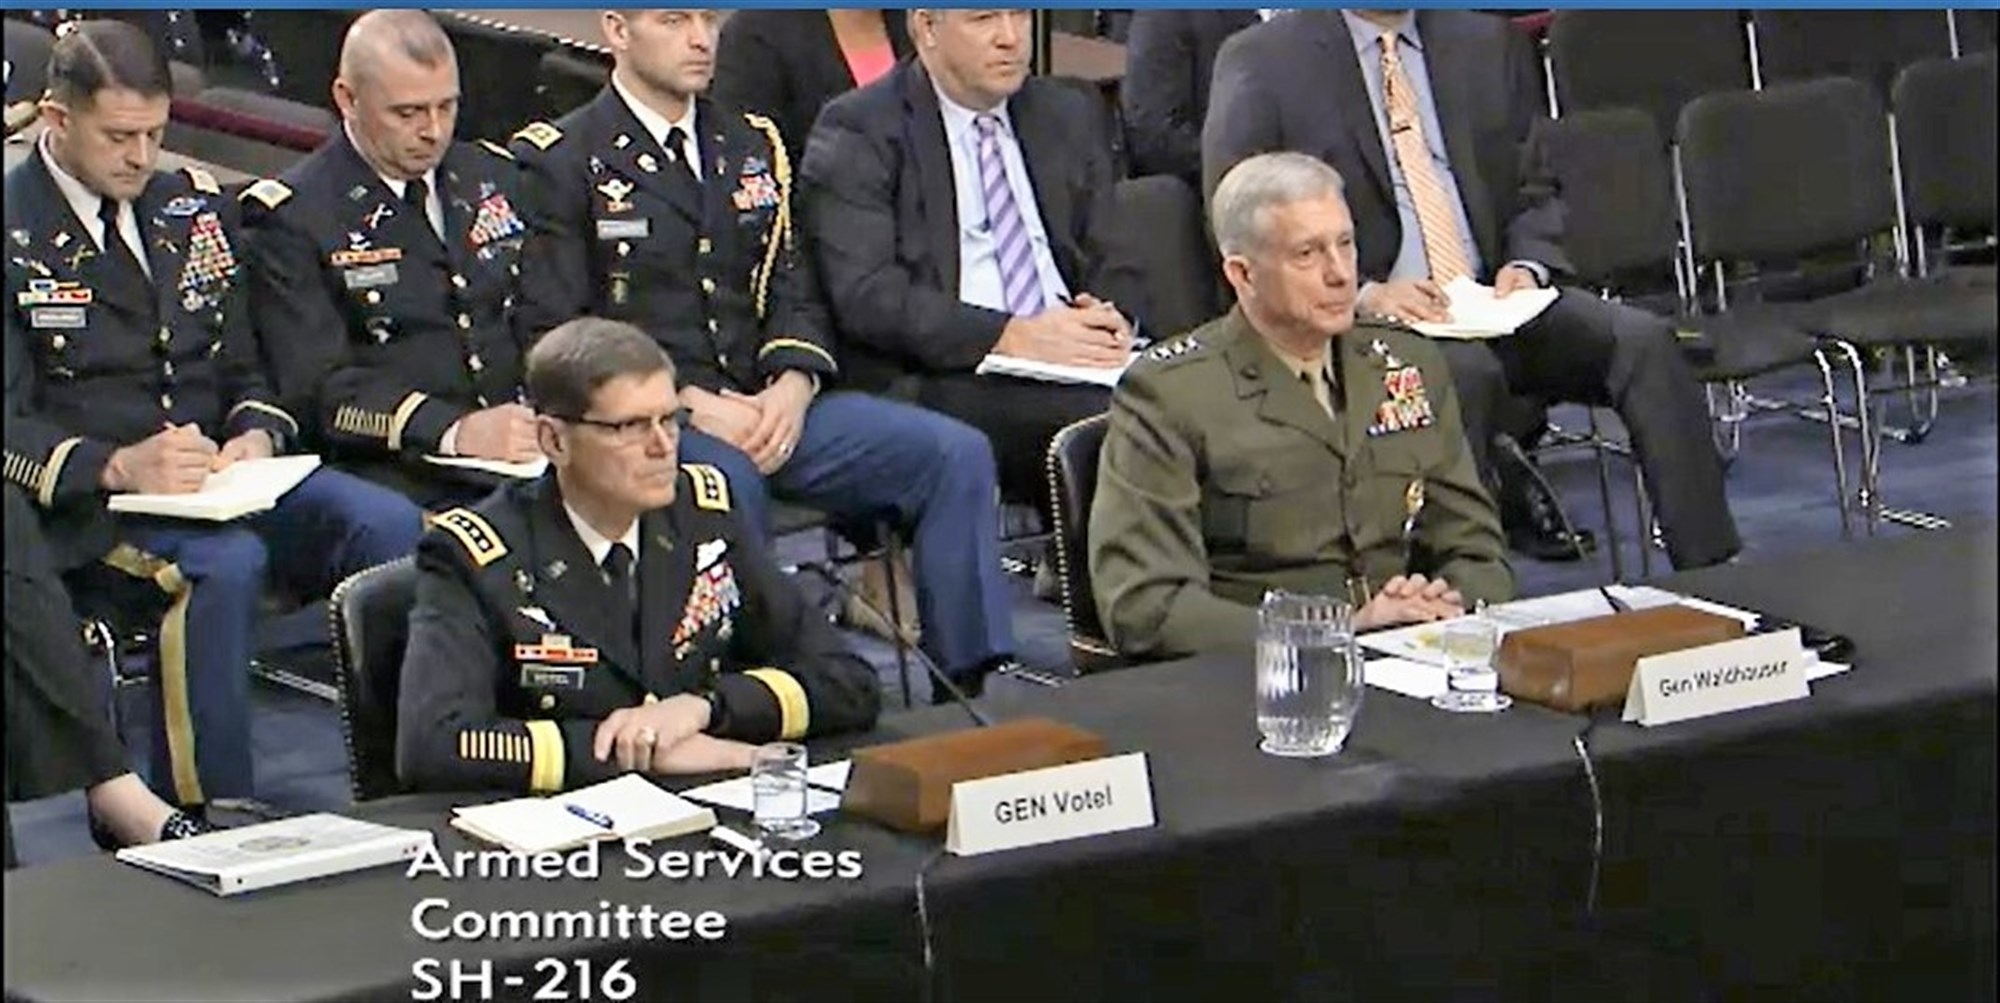 AFRICOM Commander Gen. Thomas Waldhauser (right) and CENTCOM Commander Gen. Joseph Votel, appear before the SASC, Mar. 9, 2017, Washington.  Waldhauser appeared before the committee for an annual session that allows members the opportunity receive updates from commanders and ask questions that inform decisions. During the hearing, Waldhauser submitted U.S. AFRICOM's official annual posture statement and answered questions related to the command's area of responsibility on topics ranging from counter-terrorism initiatives to the influence of other countries upon the African continent.  (Courtesy image)